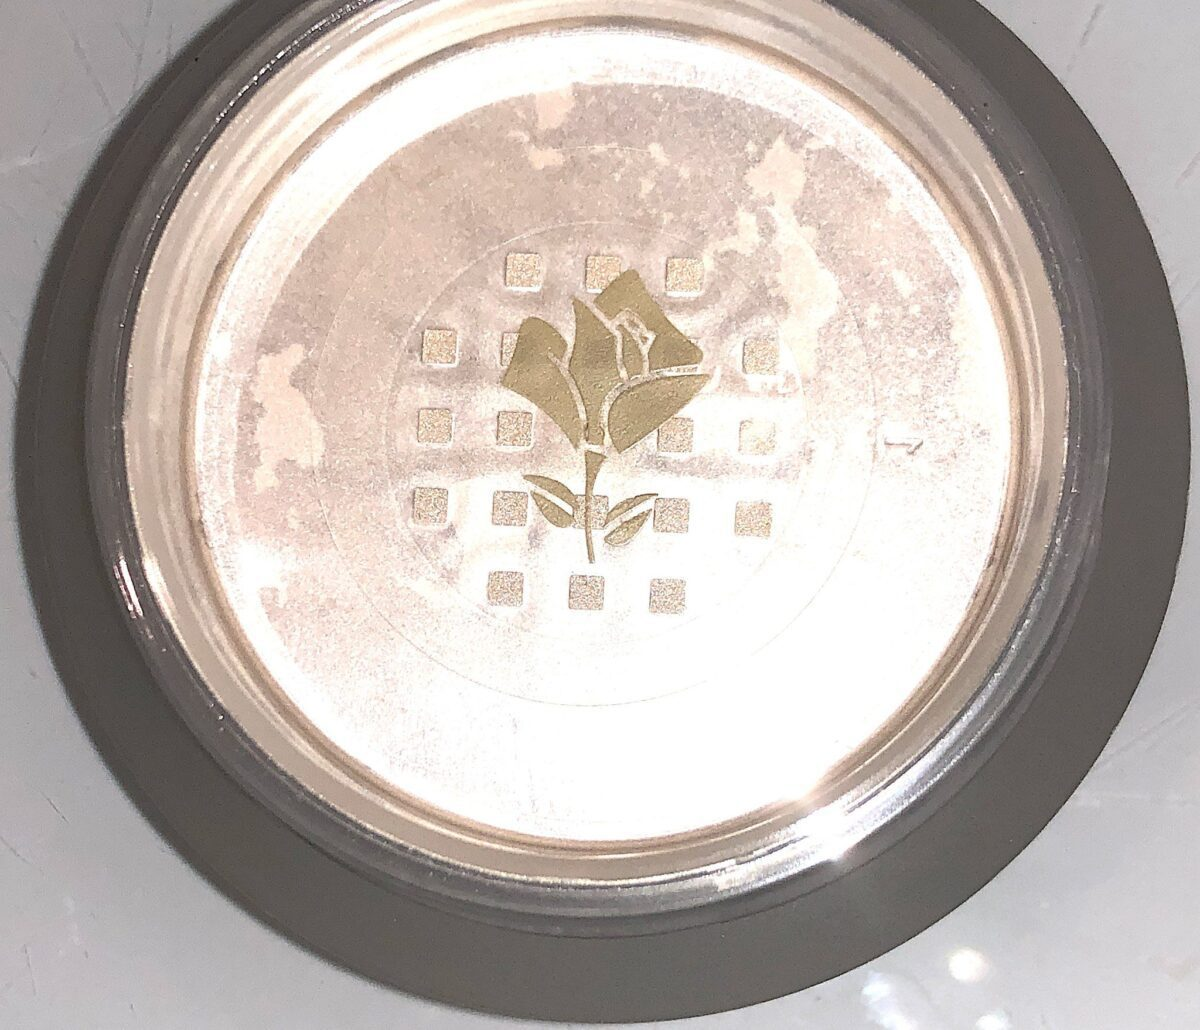 THE SHADE OF THE LANCOME ABSOLUE PECHE POWDER